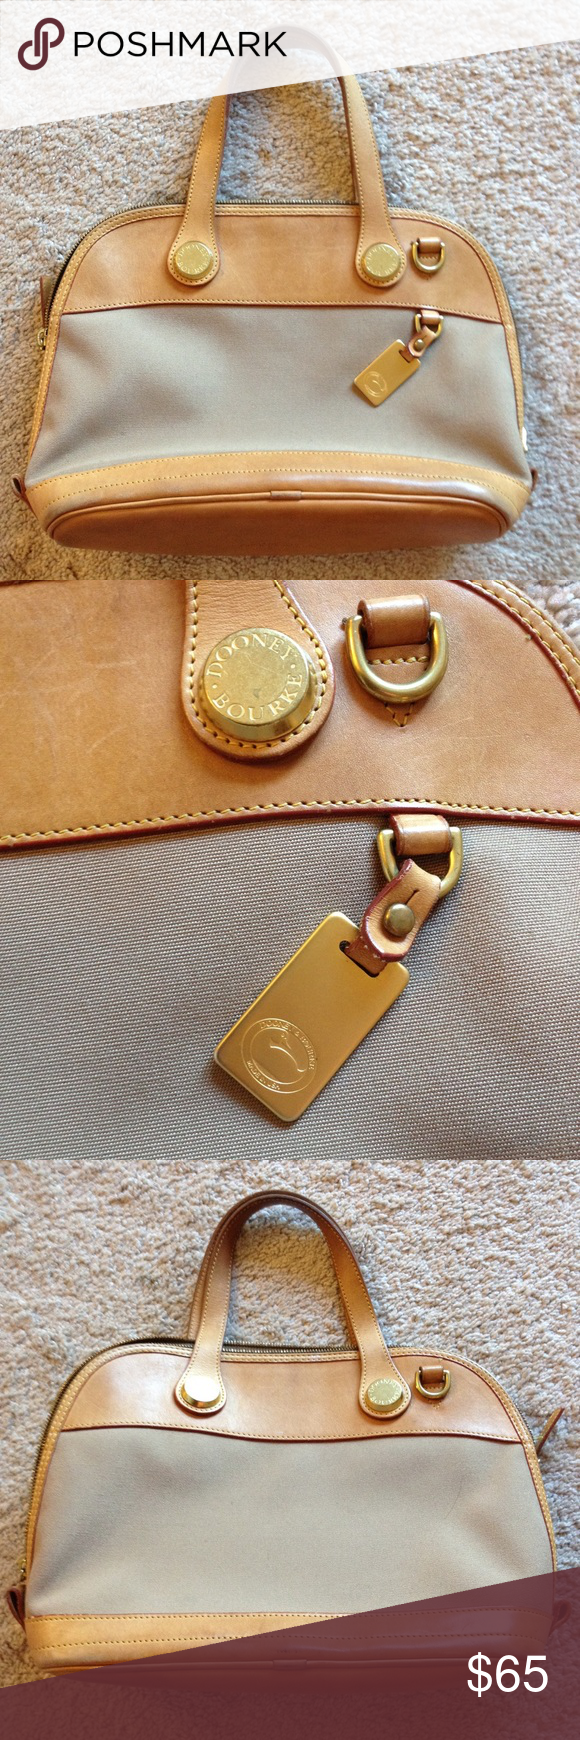 ‼️SALE‼️ $85⬇️$65 DOONEY&BOURKE tan leather purse Tan leather and beige fabric DOONEY & BOURKE purse. Great size and easy to access interior pockets. Gold hardware. Pre-owned, excellent condition. Dooney & Bourke Bags Totes